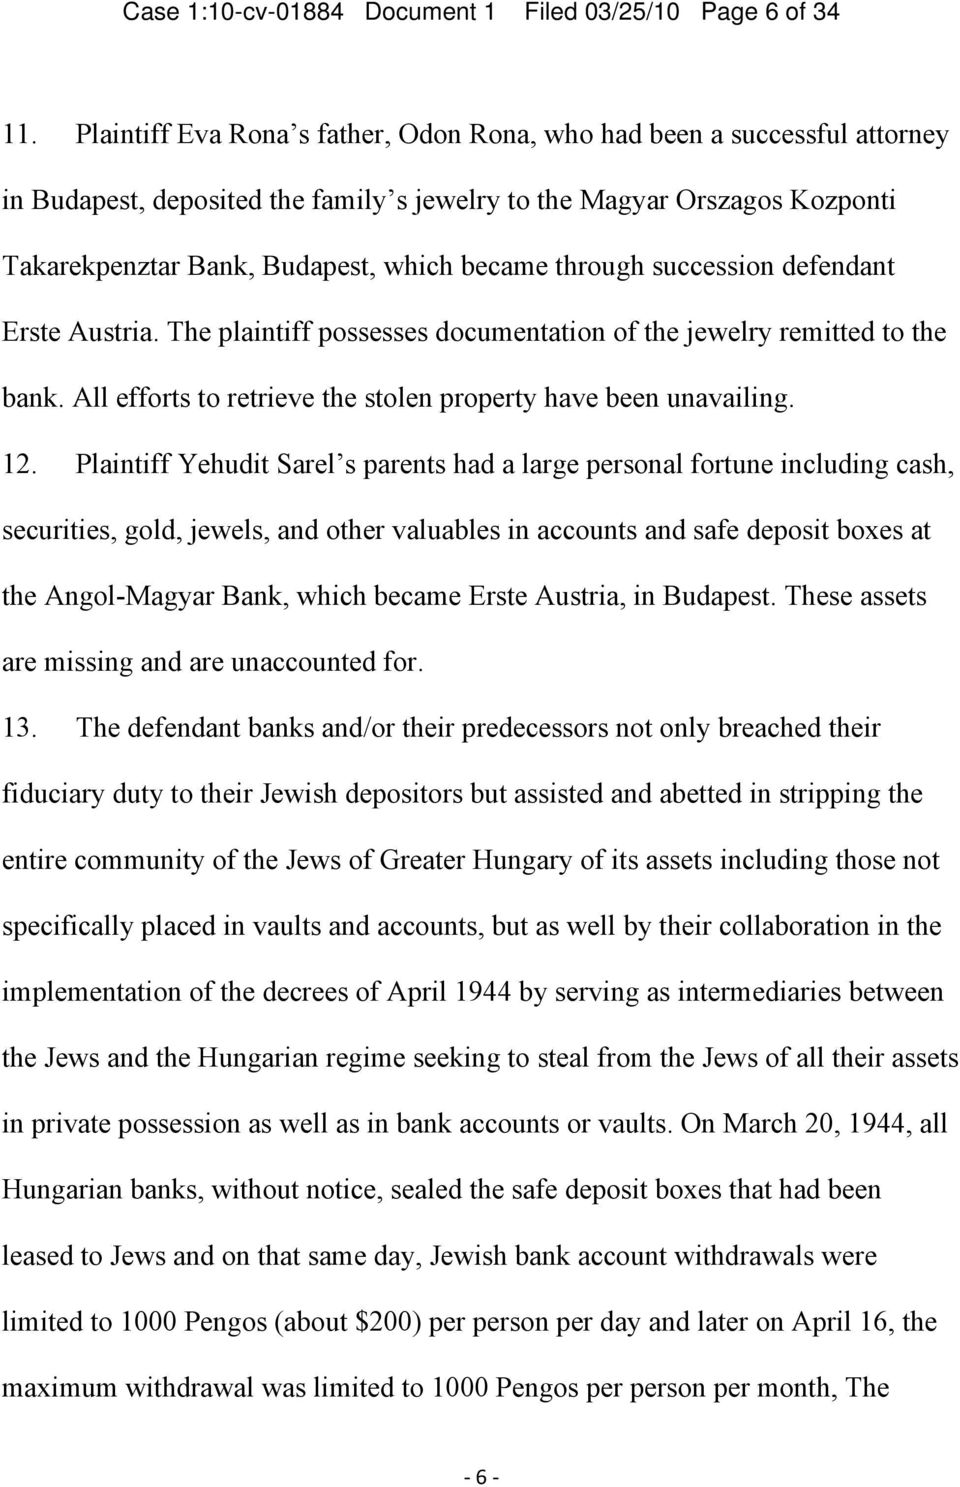 through succession defendant Erste Austria. The plaintiff possesses documentation of the jewelry remitted to the bank. All efforts to retrieve the stolen property have been unavailing. 12.